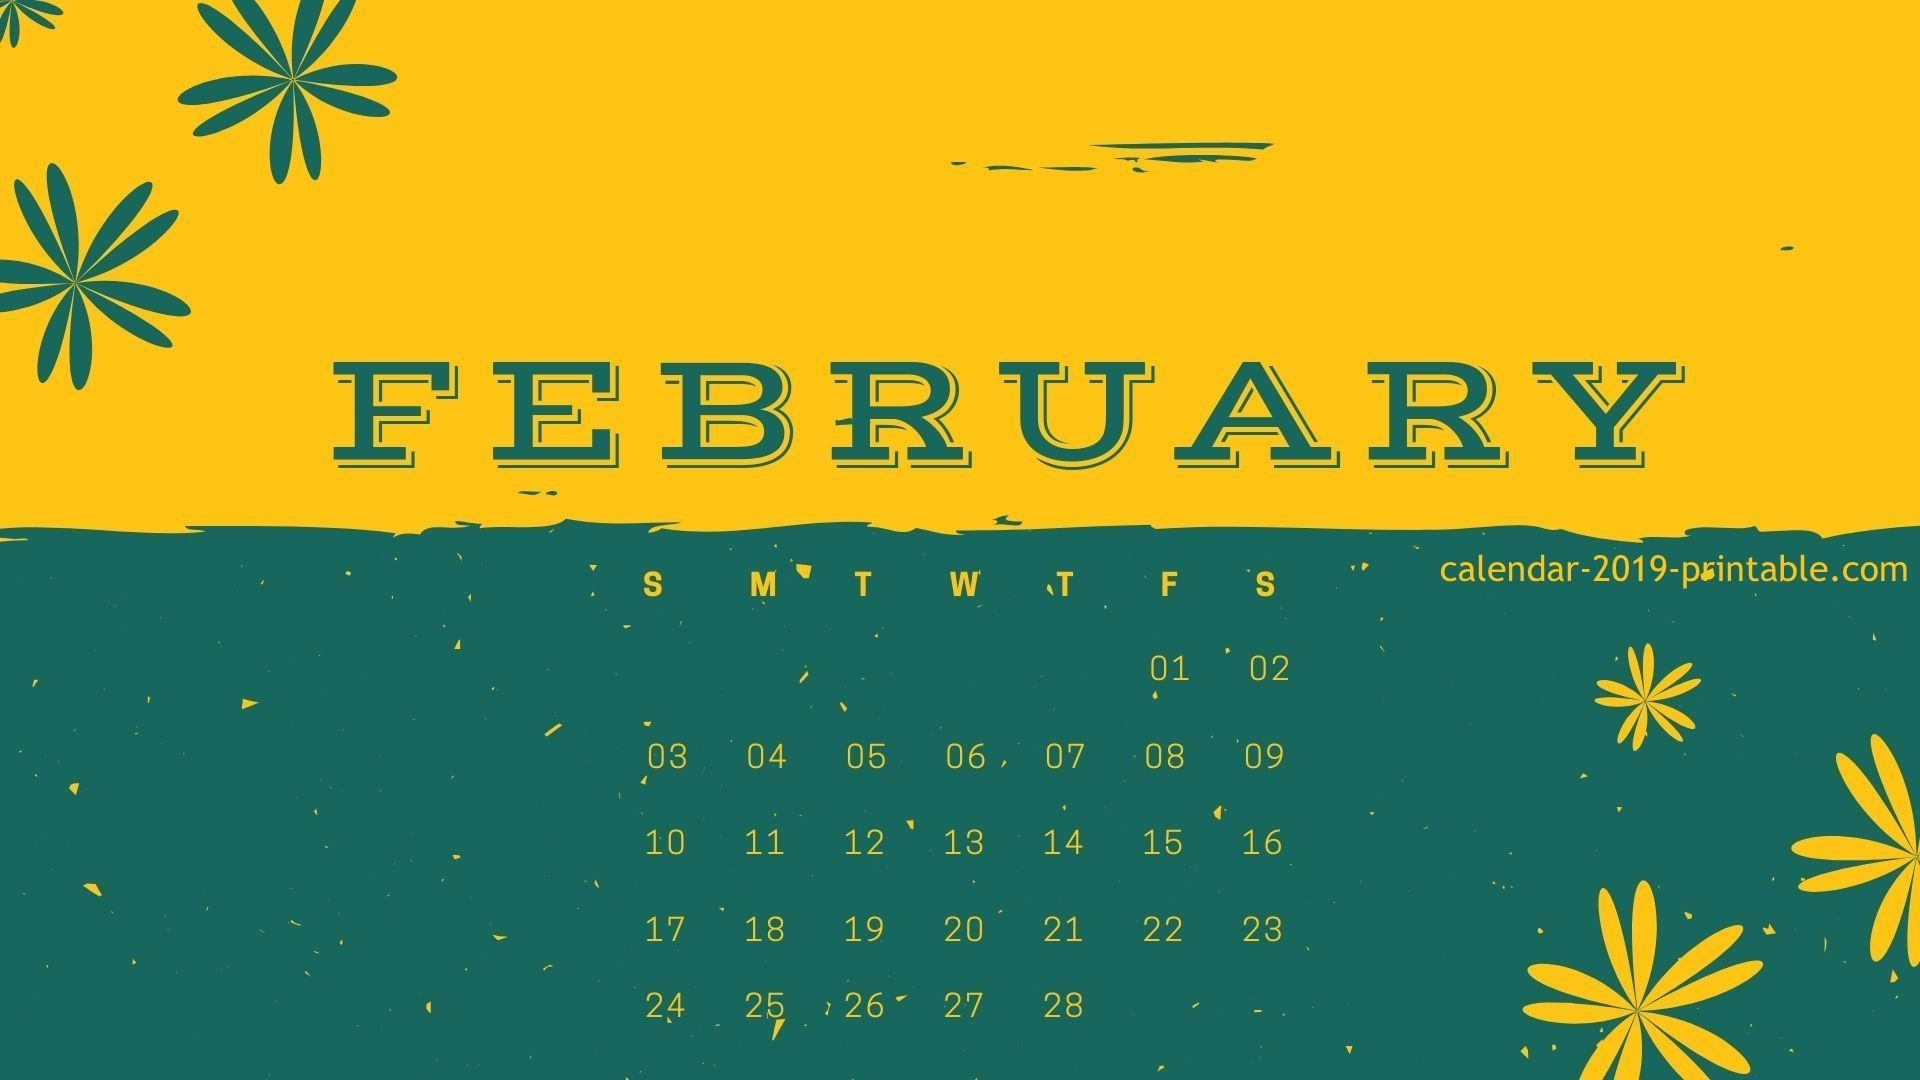 february 2019 orange green calendar wallpaper 2019 calendars::February 2019 iPhone Calendar Wallpaper